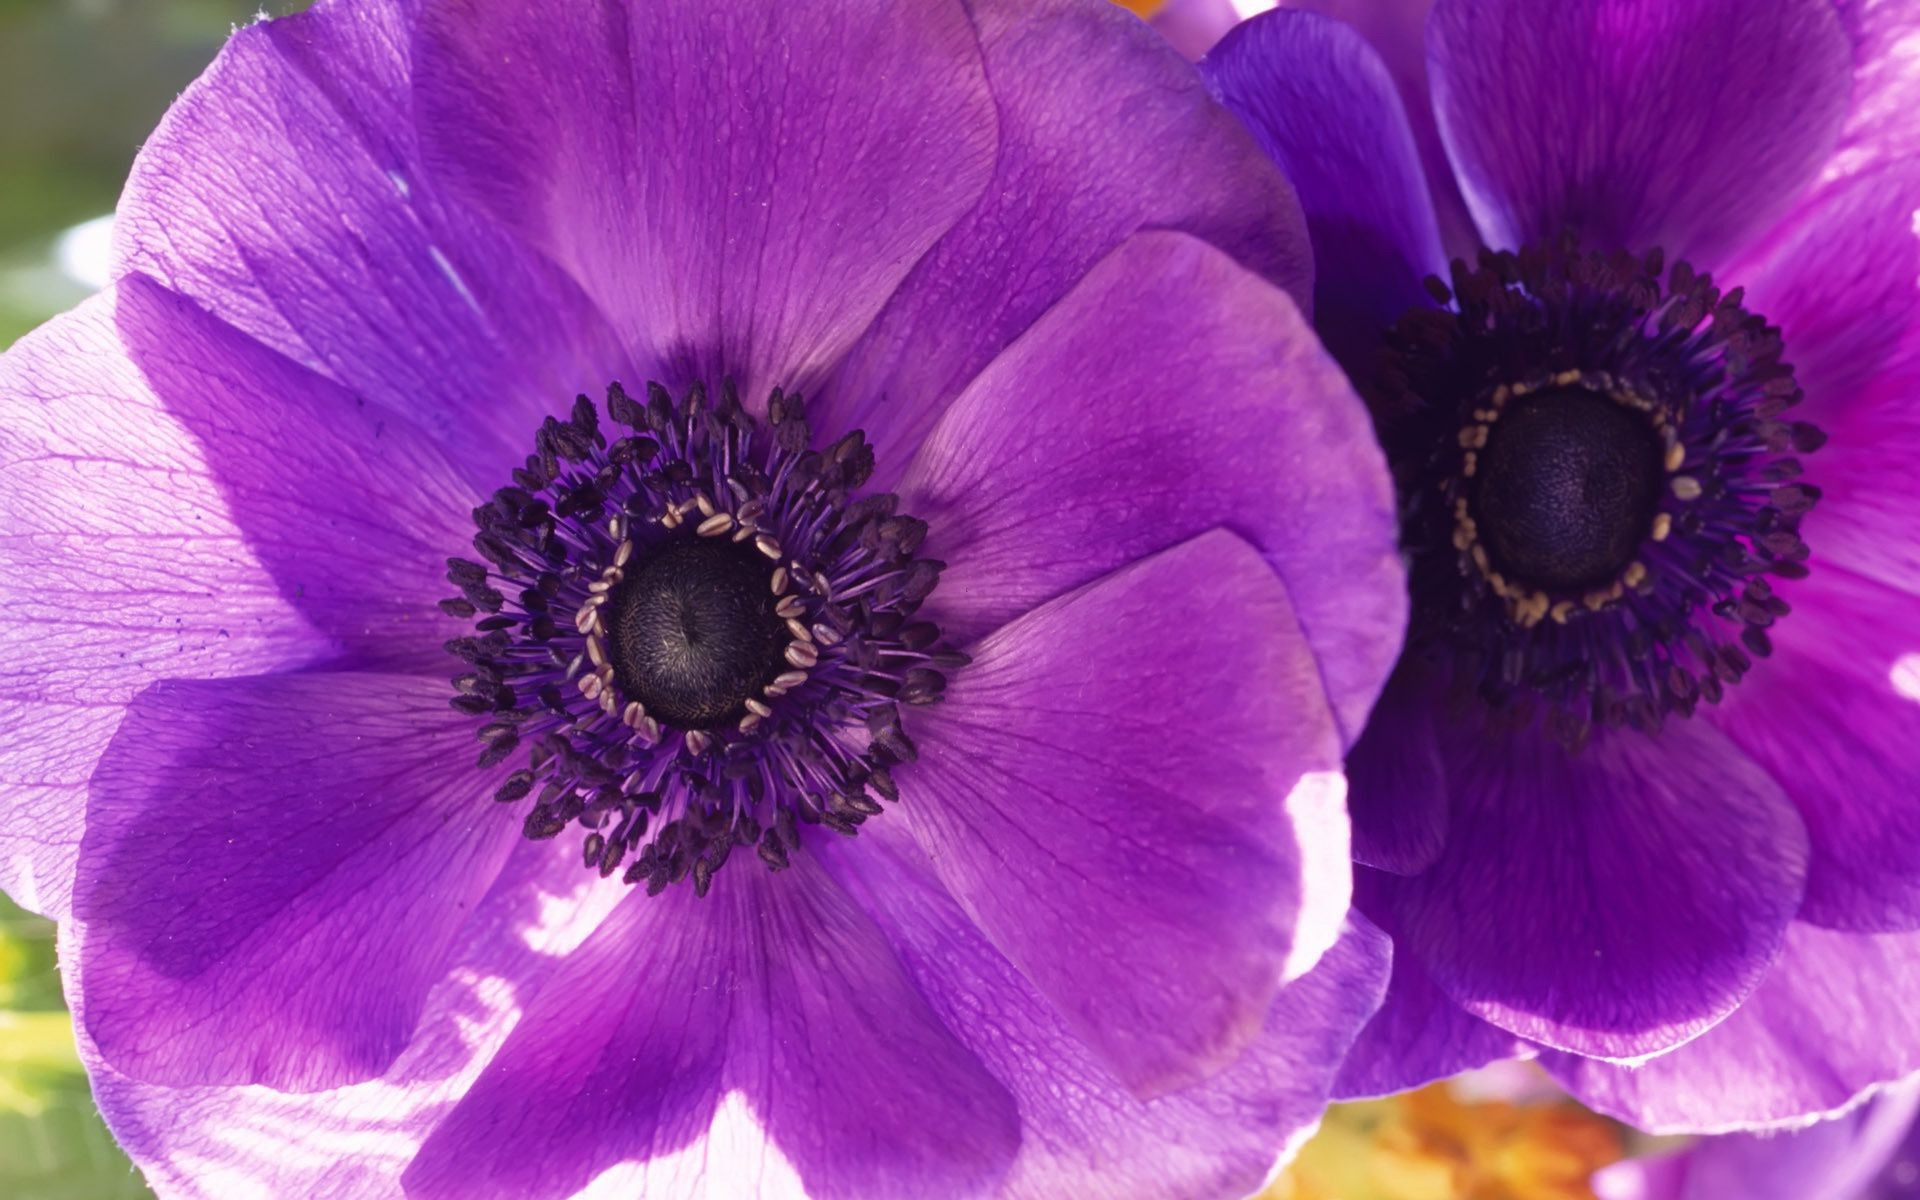 Poppies flower macro purple flowers two petals